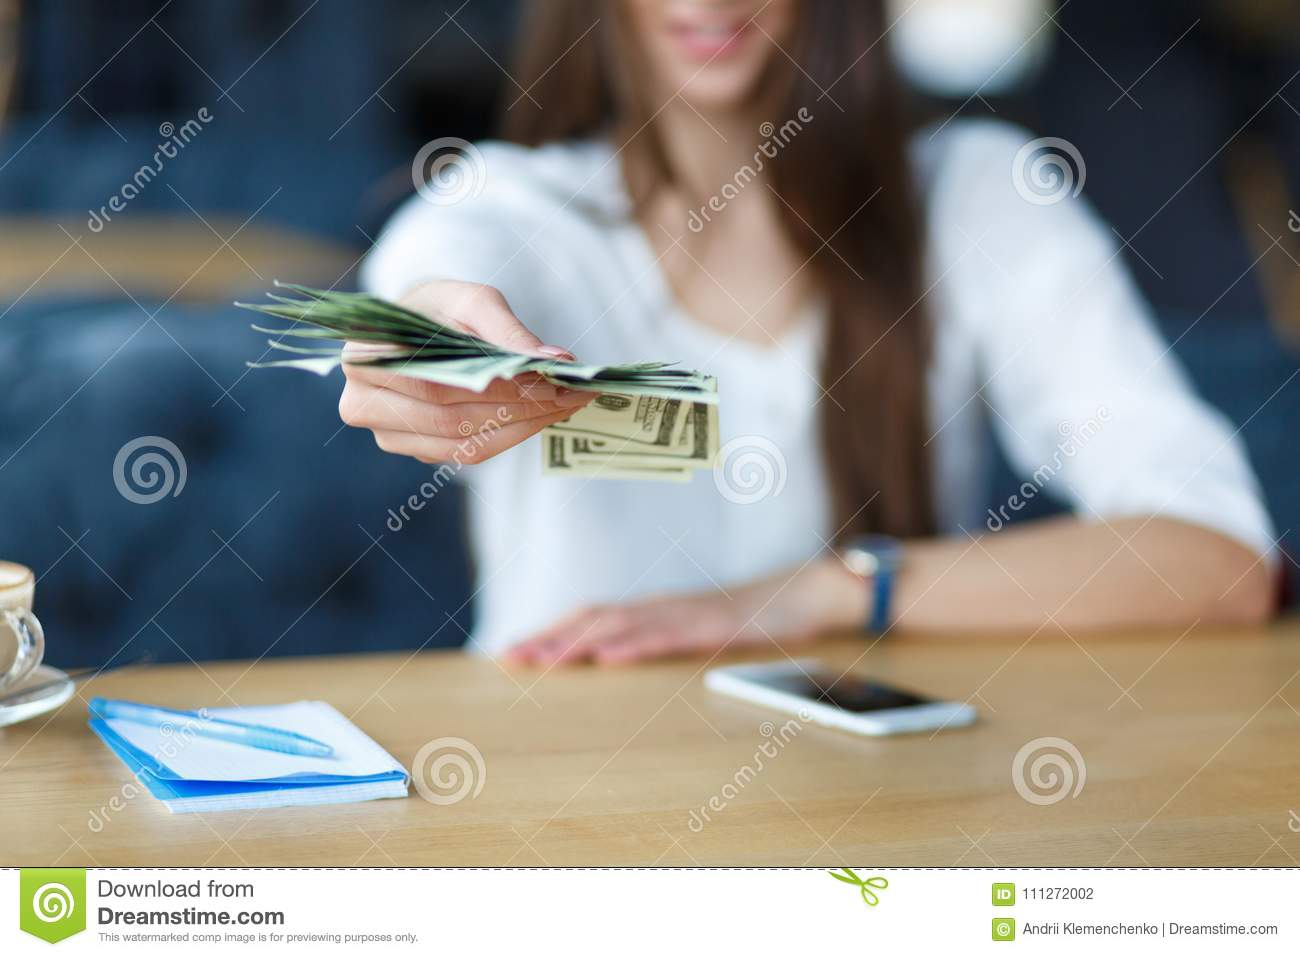 Women holding dollar on hand and seating against. Business concept